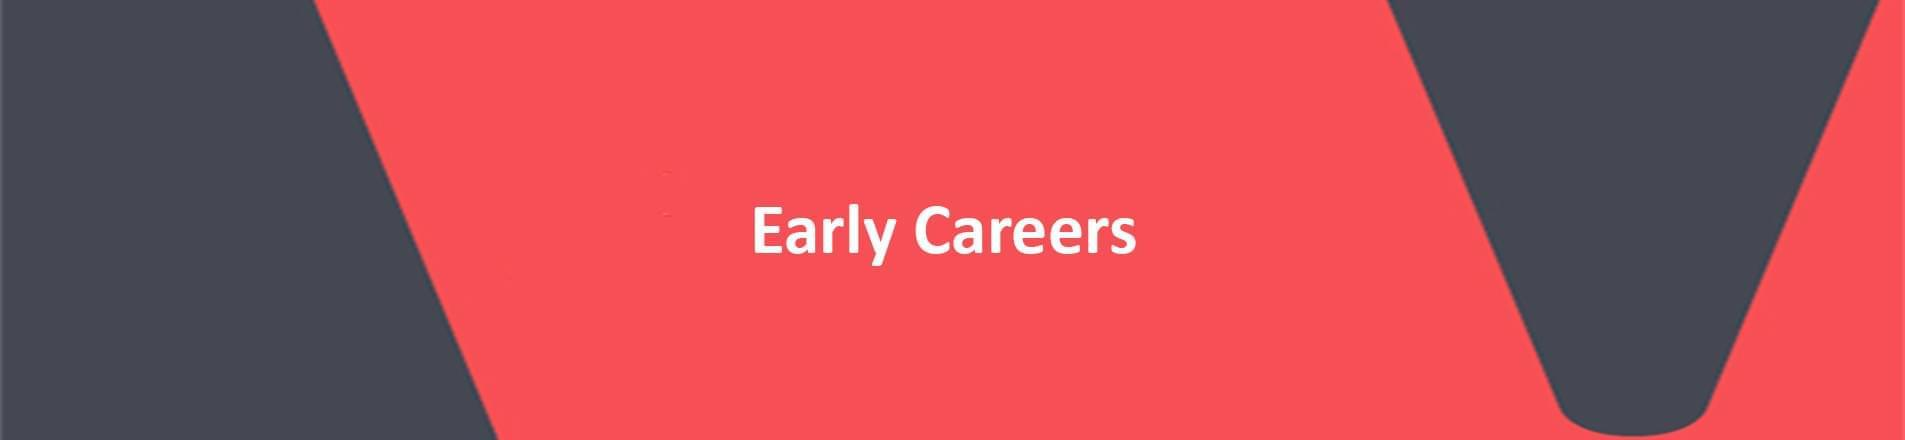 The words Early Careers on a VERCIDA branded background